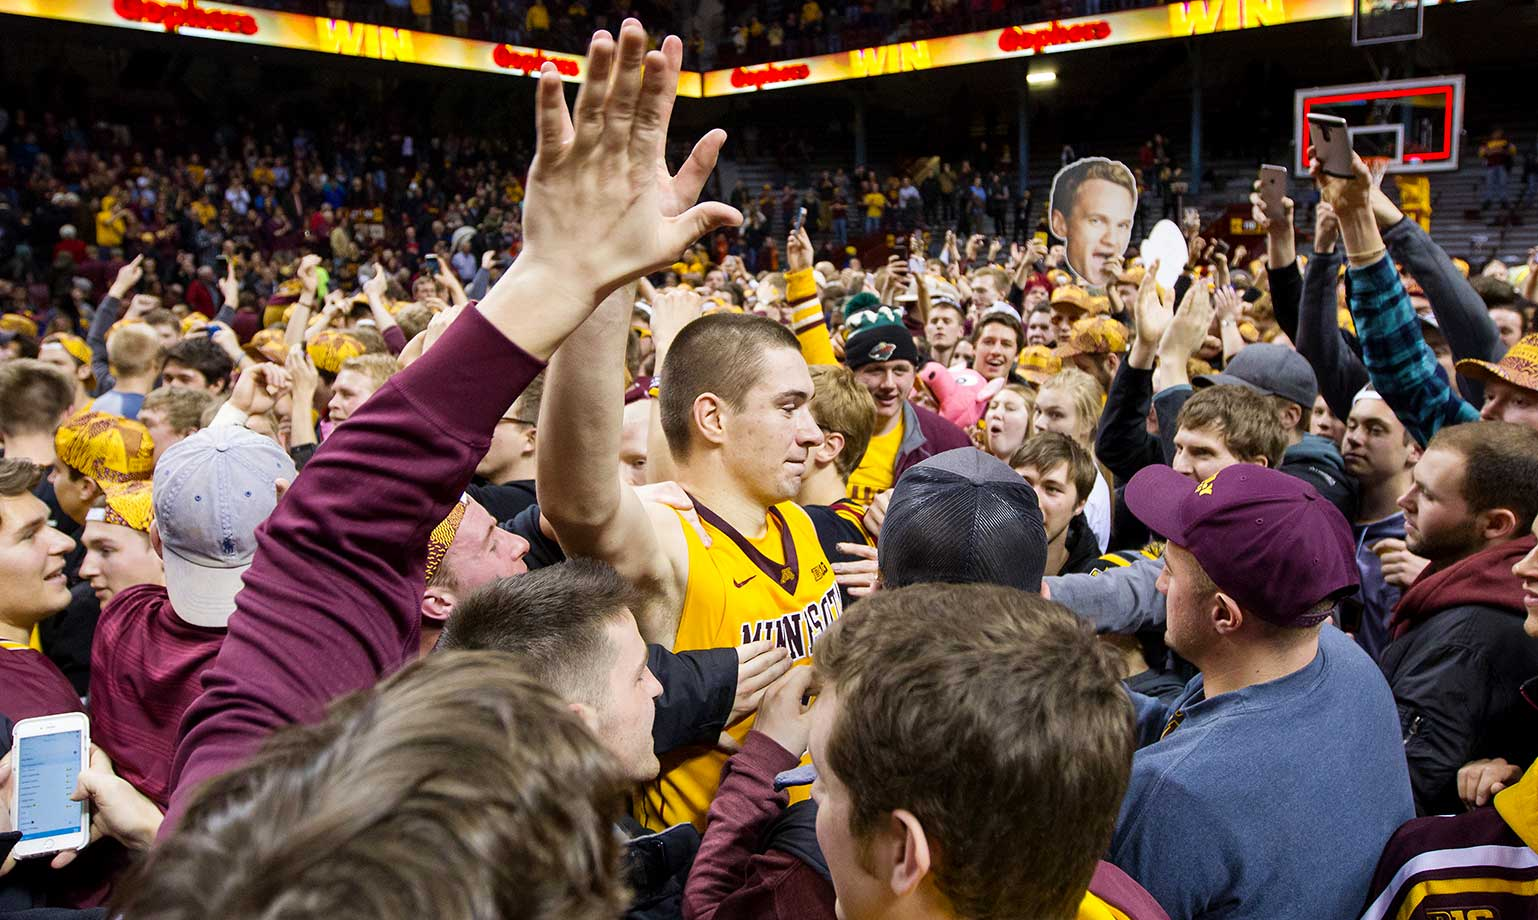 Joey King of the Minnesota Golden Gophers high fives a fan after the Gophers upset No. 6 Maryland 68-63.